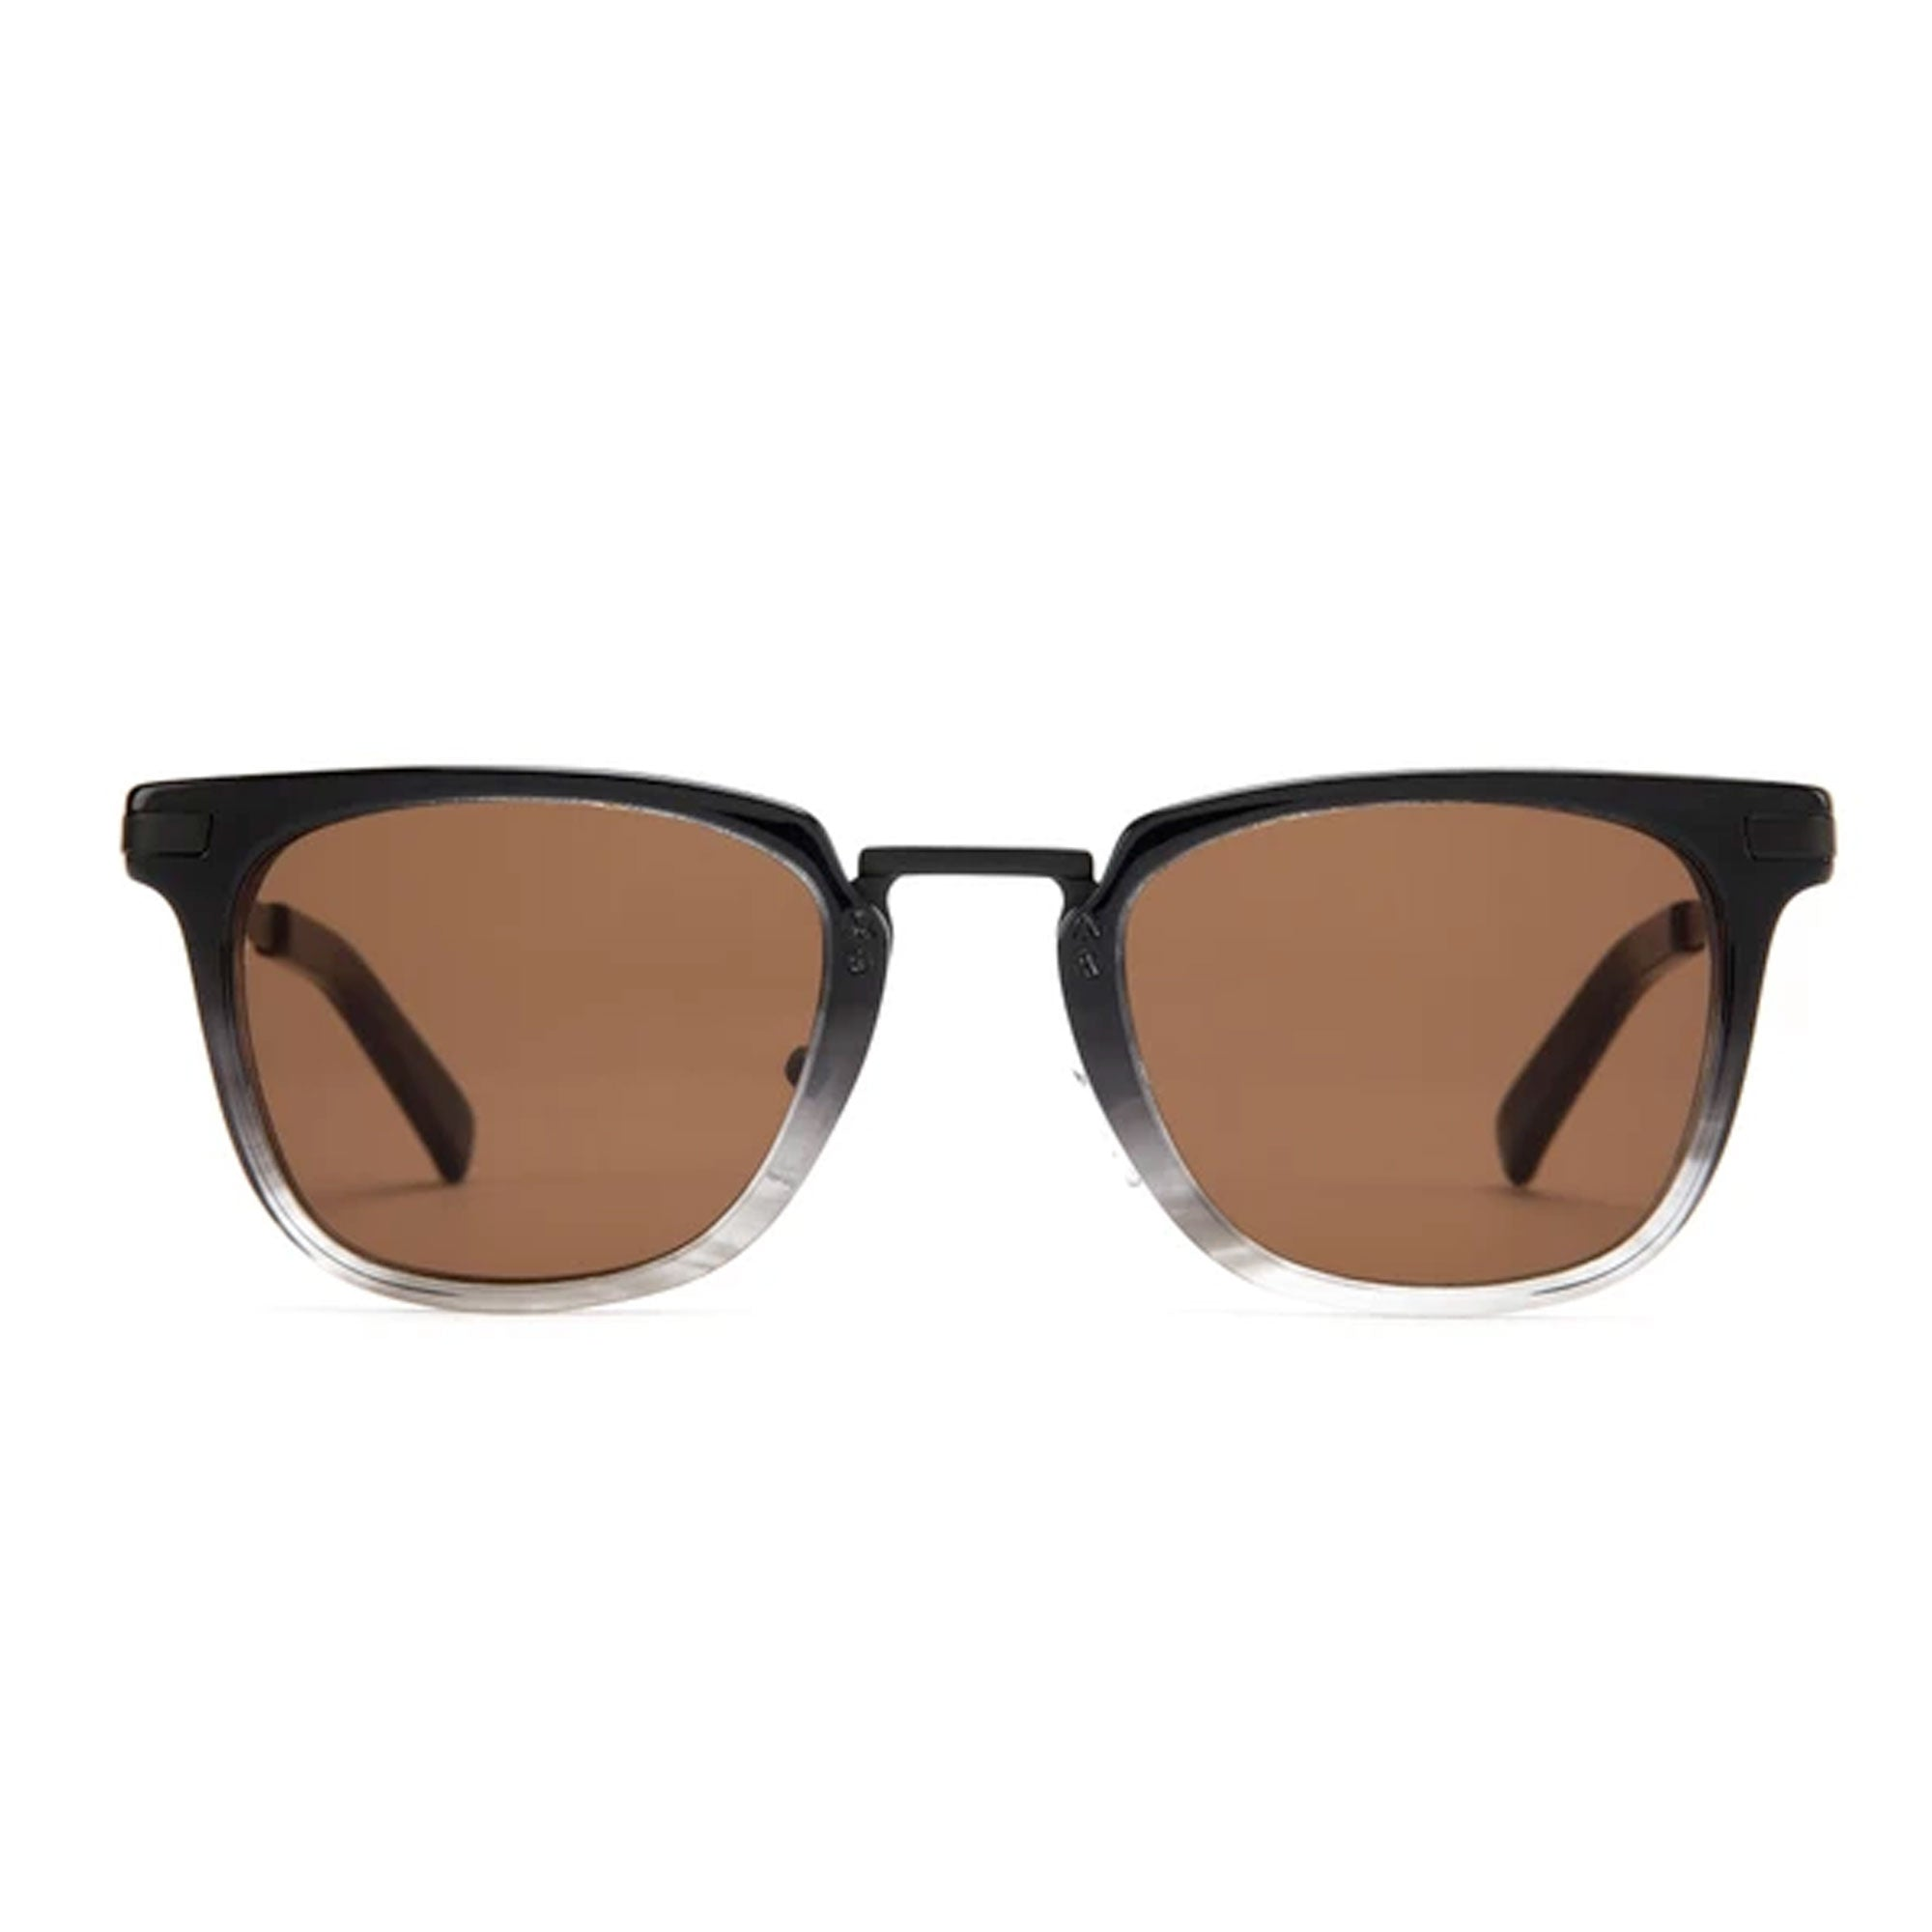 Otis The Talk Women's Sunglasses - Smoke Gradient/ Brown Polar